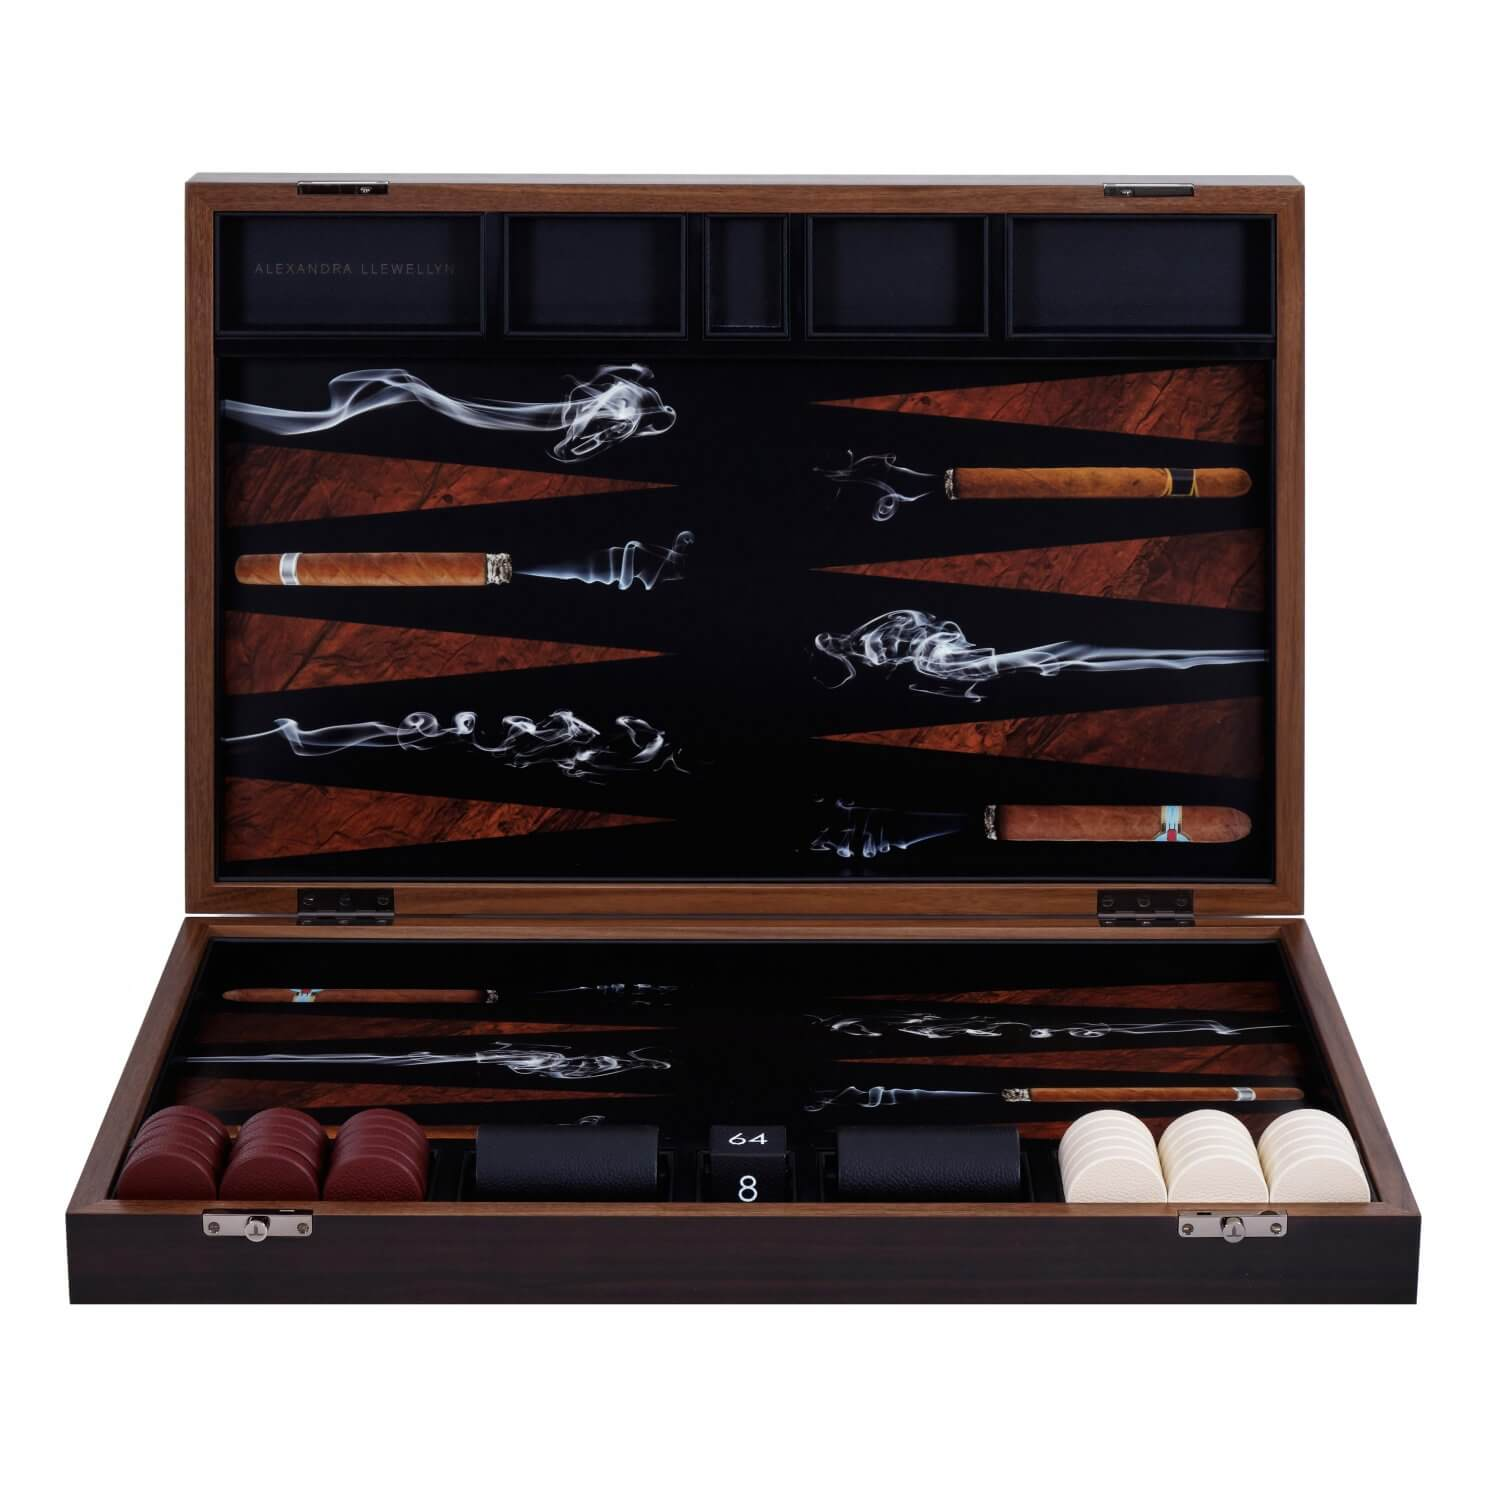 Cigar backgammon board in a Fumed Eucalyptus box with red and cream leather pieces